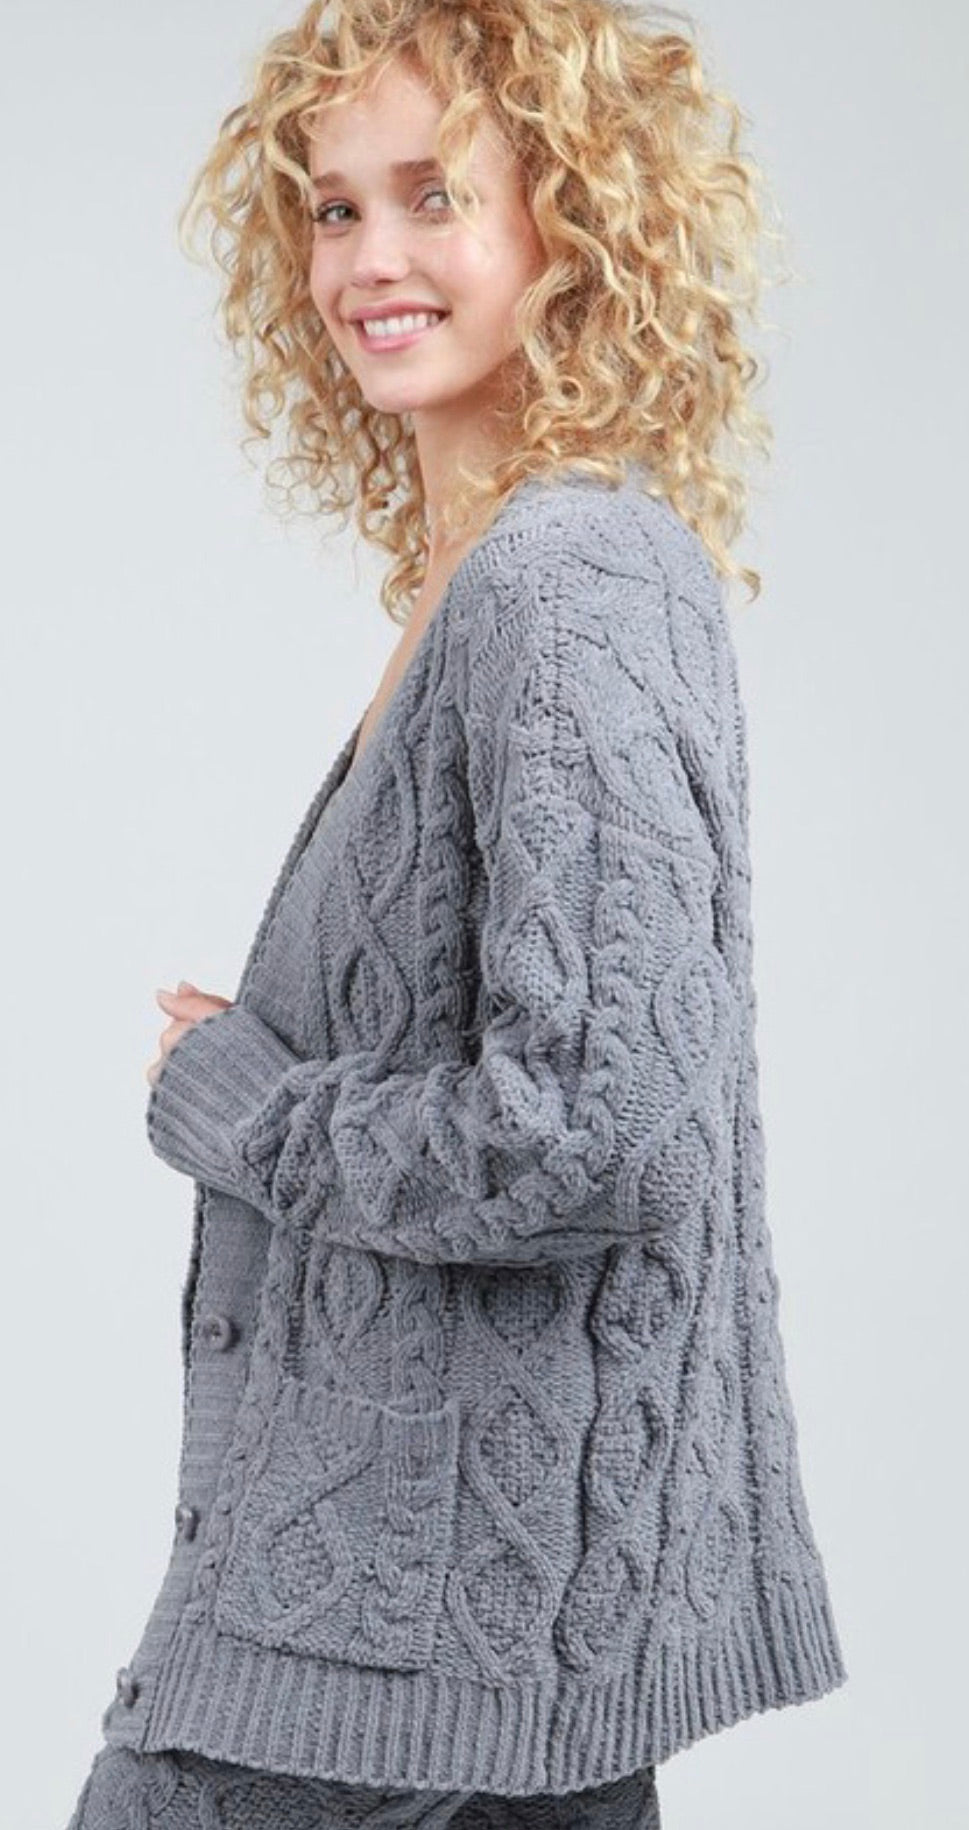 Berber Fleece Sweater Cardigan with Front Button Closure and Pockets | Cheeky Cactus